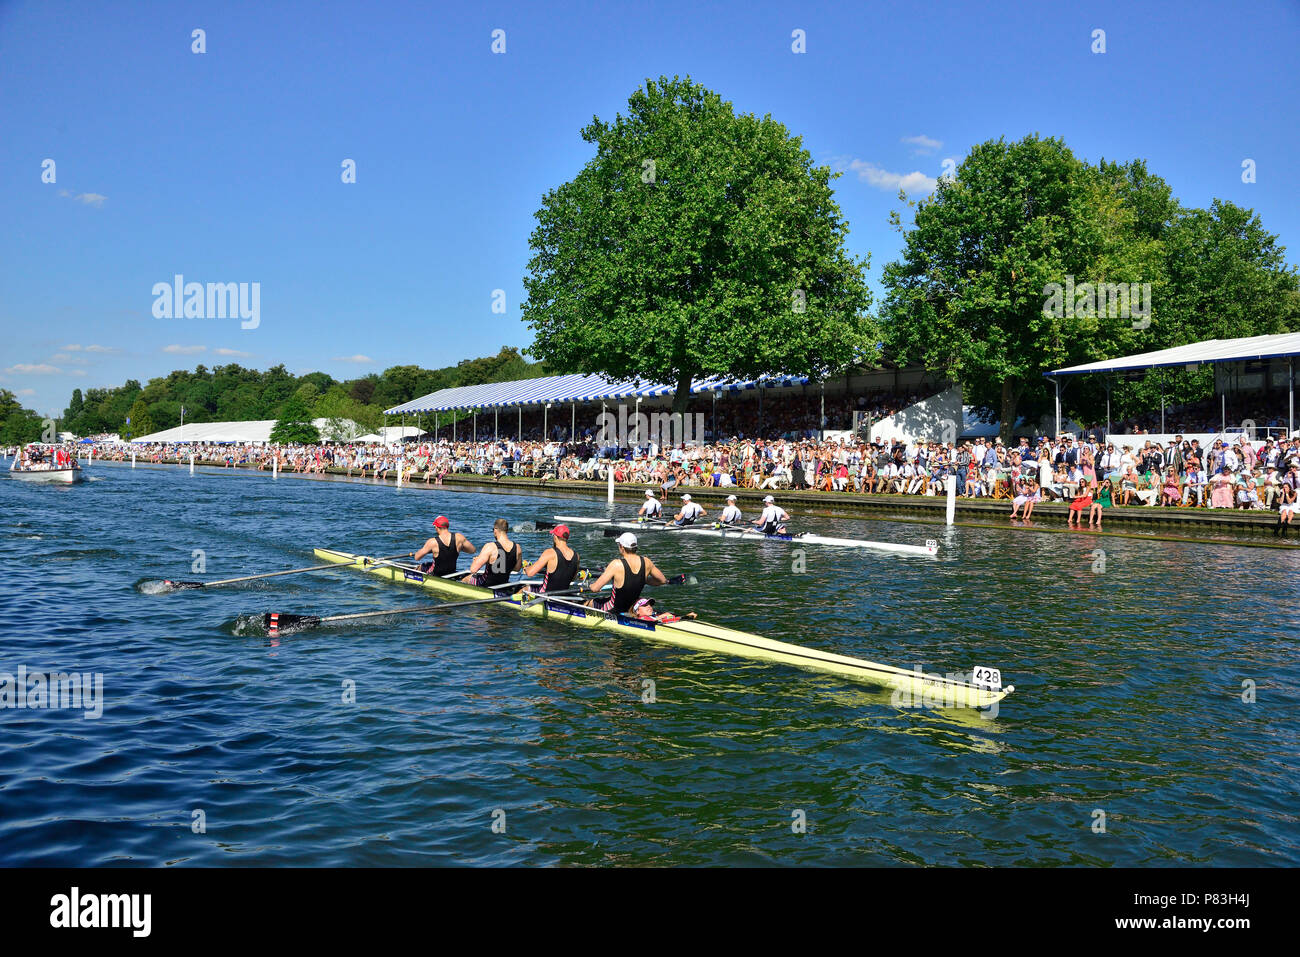 At Henley Royal Regatta Thames Rowing Club  'A' took on Molesey Boat Club 'A' for the final of the Britannia Challenge Cup.  Molesey pushed Thames all the way to the finish with Thames never pulling more than one length ahead.  Thames equalled both the Barrier and Fawley records as well as breaking the course record by one second. Credit Wendy Johnson/Alamy Live News - Stock Image